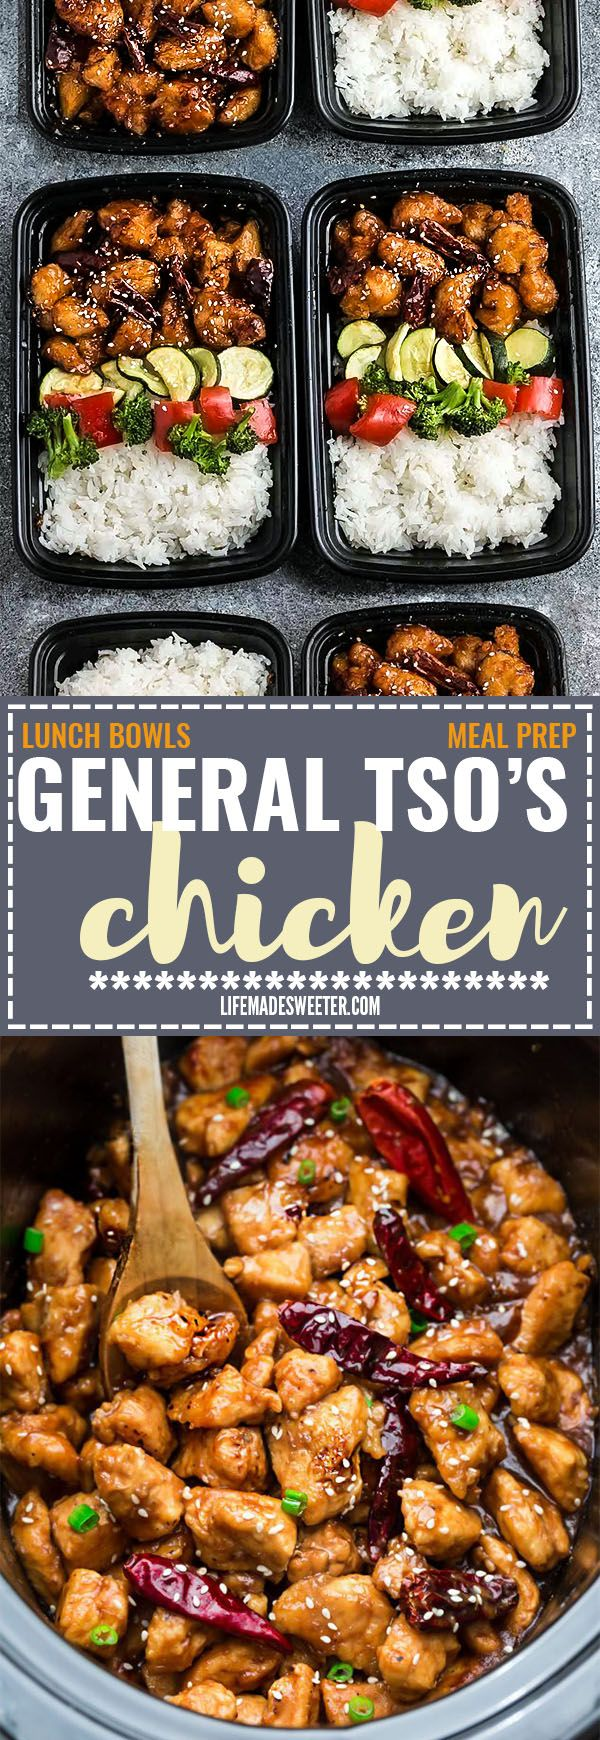 General Tso's Chicken Meal Prep Lunch Bowls - coated in a sweet, savory and spicy sauce that's better than the Chinese takeout restaurant! Best of all, it's full of authentic flavors and super easy to make with just 15 minutes of prep time. Skip that takeout menu! Better & healthier! With gluten free and paleo friendly options. Weekly meal prep for the week and leftovers are great for lunch bowls or lunch boxes for work or school. Slow cooker, crock-pot & Instant Pot pressure cooker…